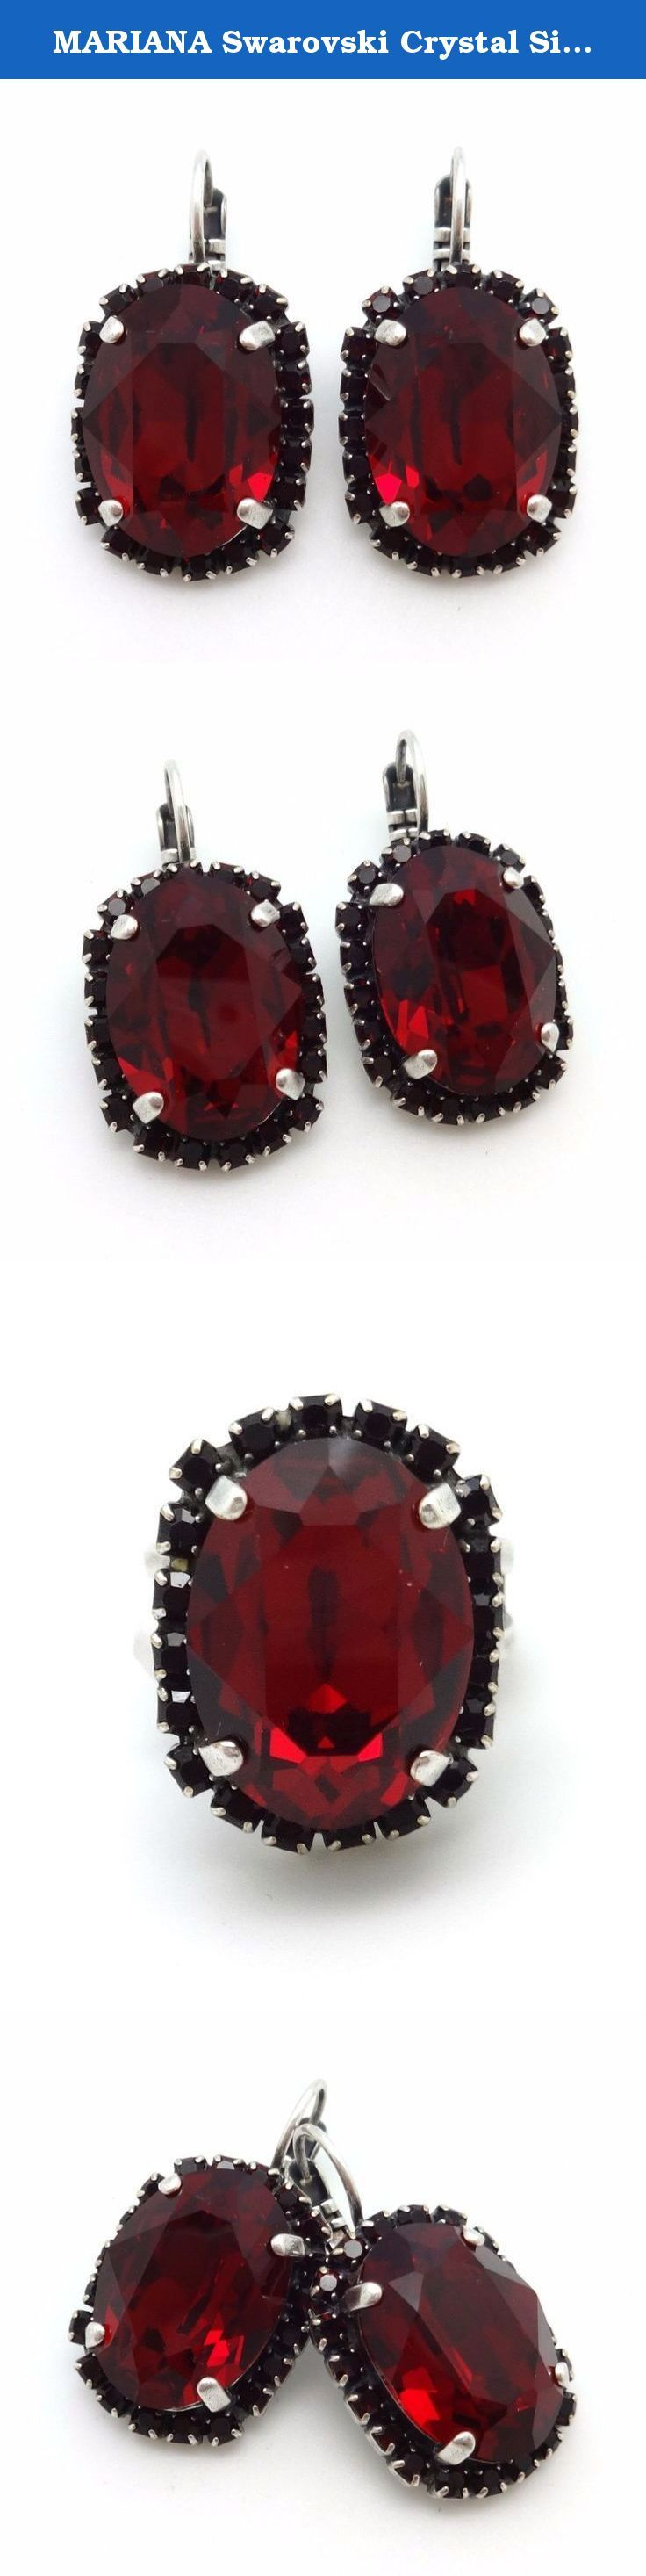 MARIANA Swarovski Crystal Silvertone Plated Earrings Large Red Oval Cut 1070 Lady in Red. The artist and jewelry designer Mariana has been creating unique and original pieces of jewelry since 1997. Mariana's jewelry is famous all over the world. Her naive colorfulness and her flawless interfusion between old and new, fabric and stone, material and spirit is visible in every one of her jewels. It is the foundation; the heart and the core of her creation. Mariana's Jewelry has a lifetime...